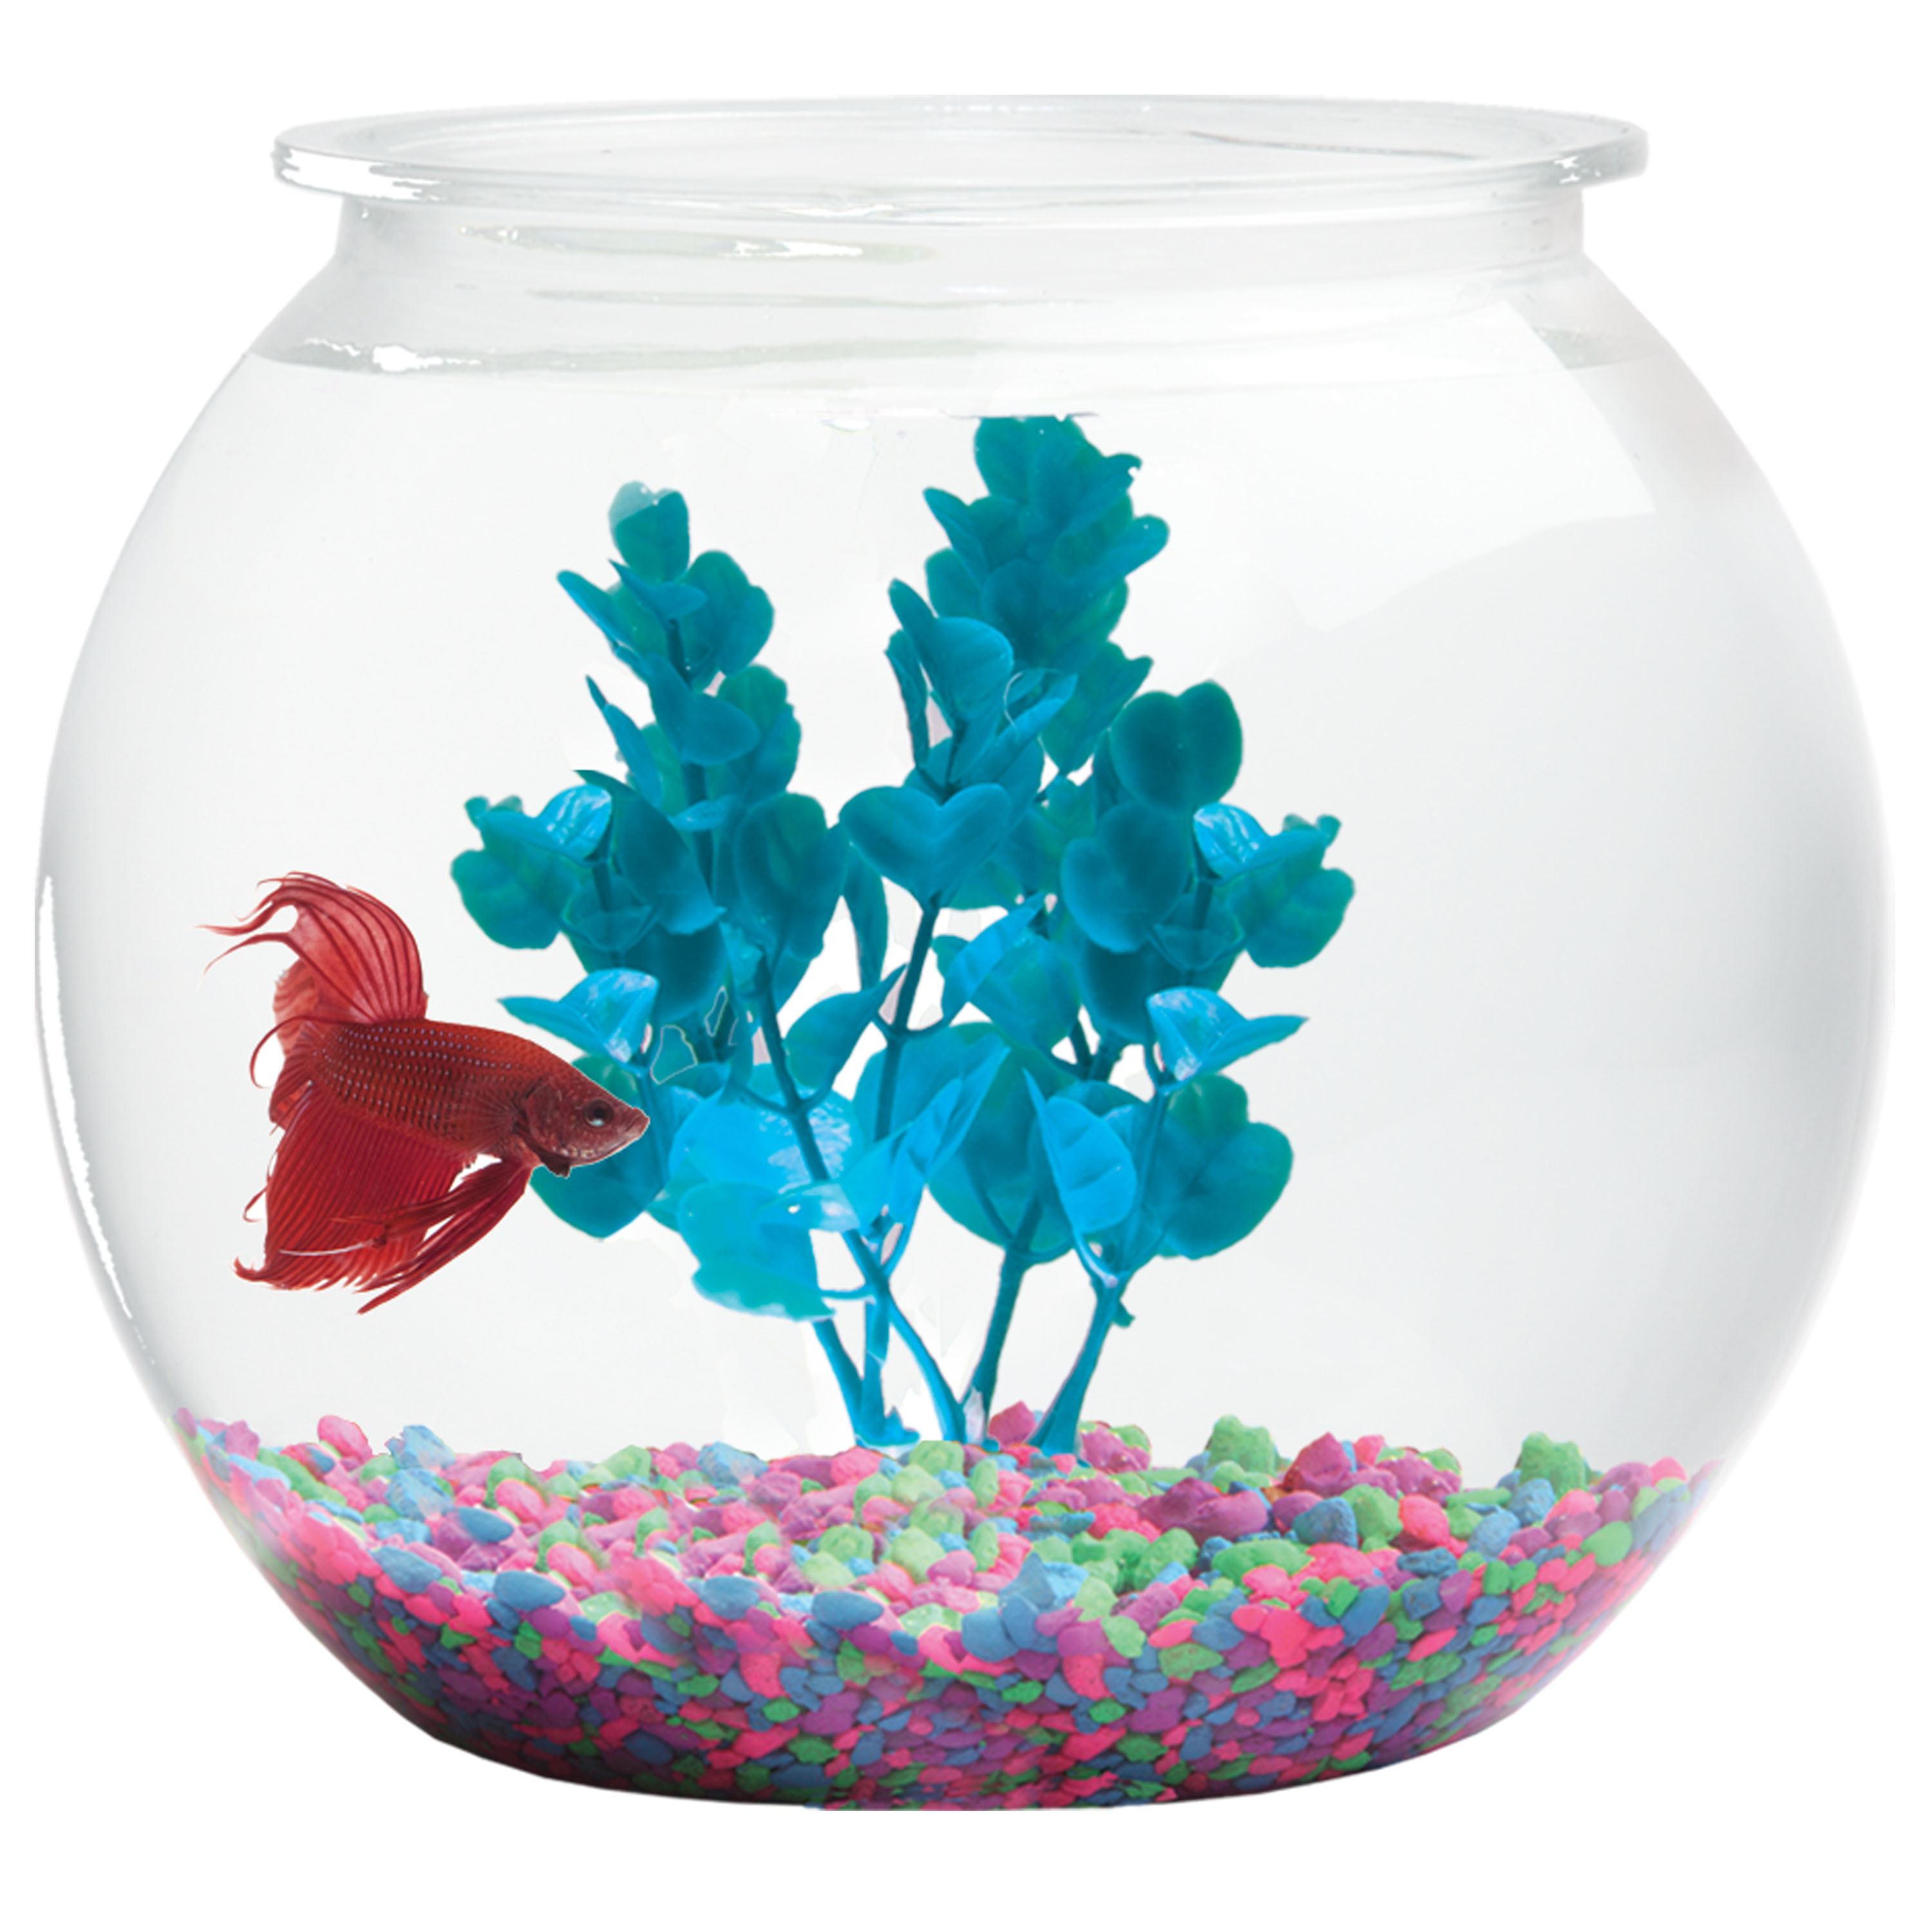 Hawkeye 3-Gallon Bubble Shaped Fish Bowl